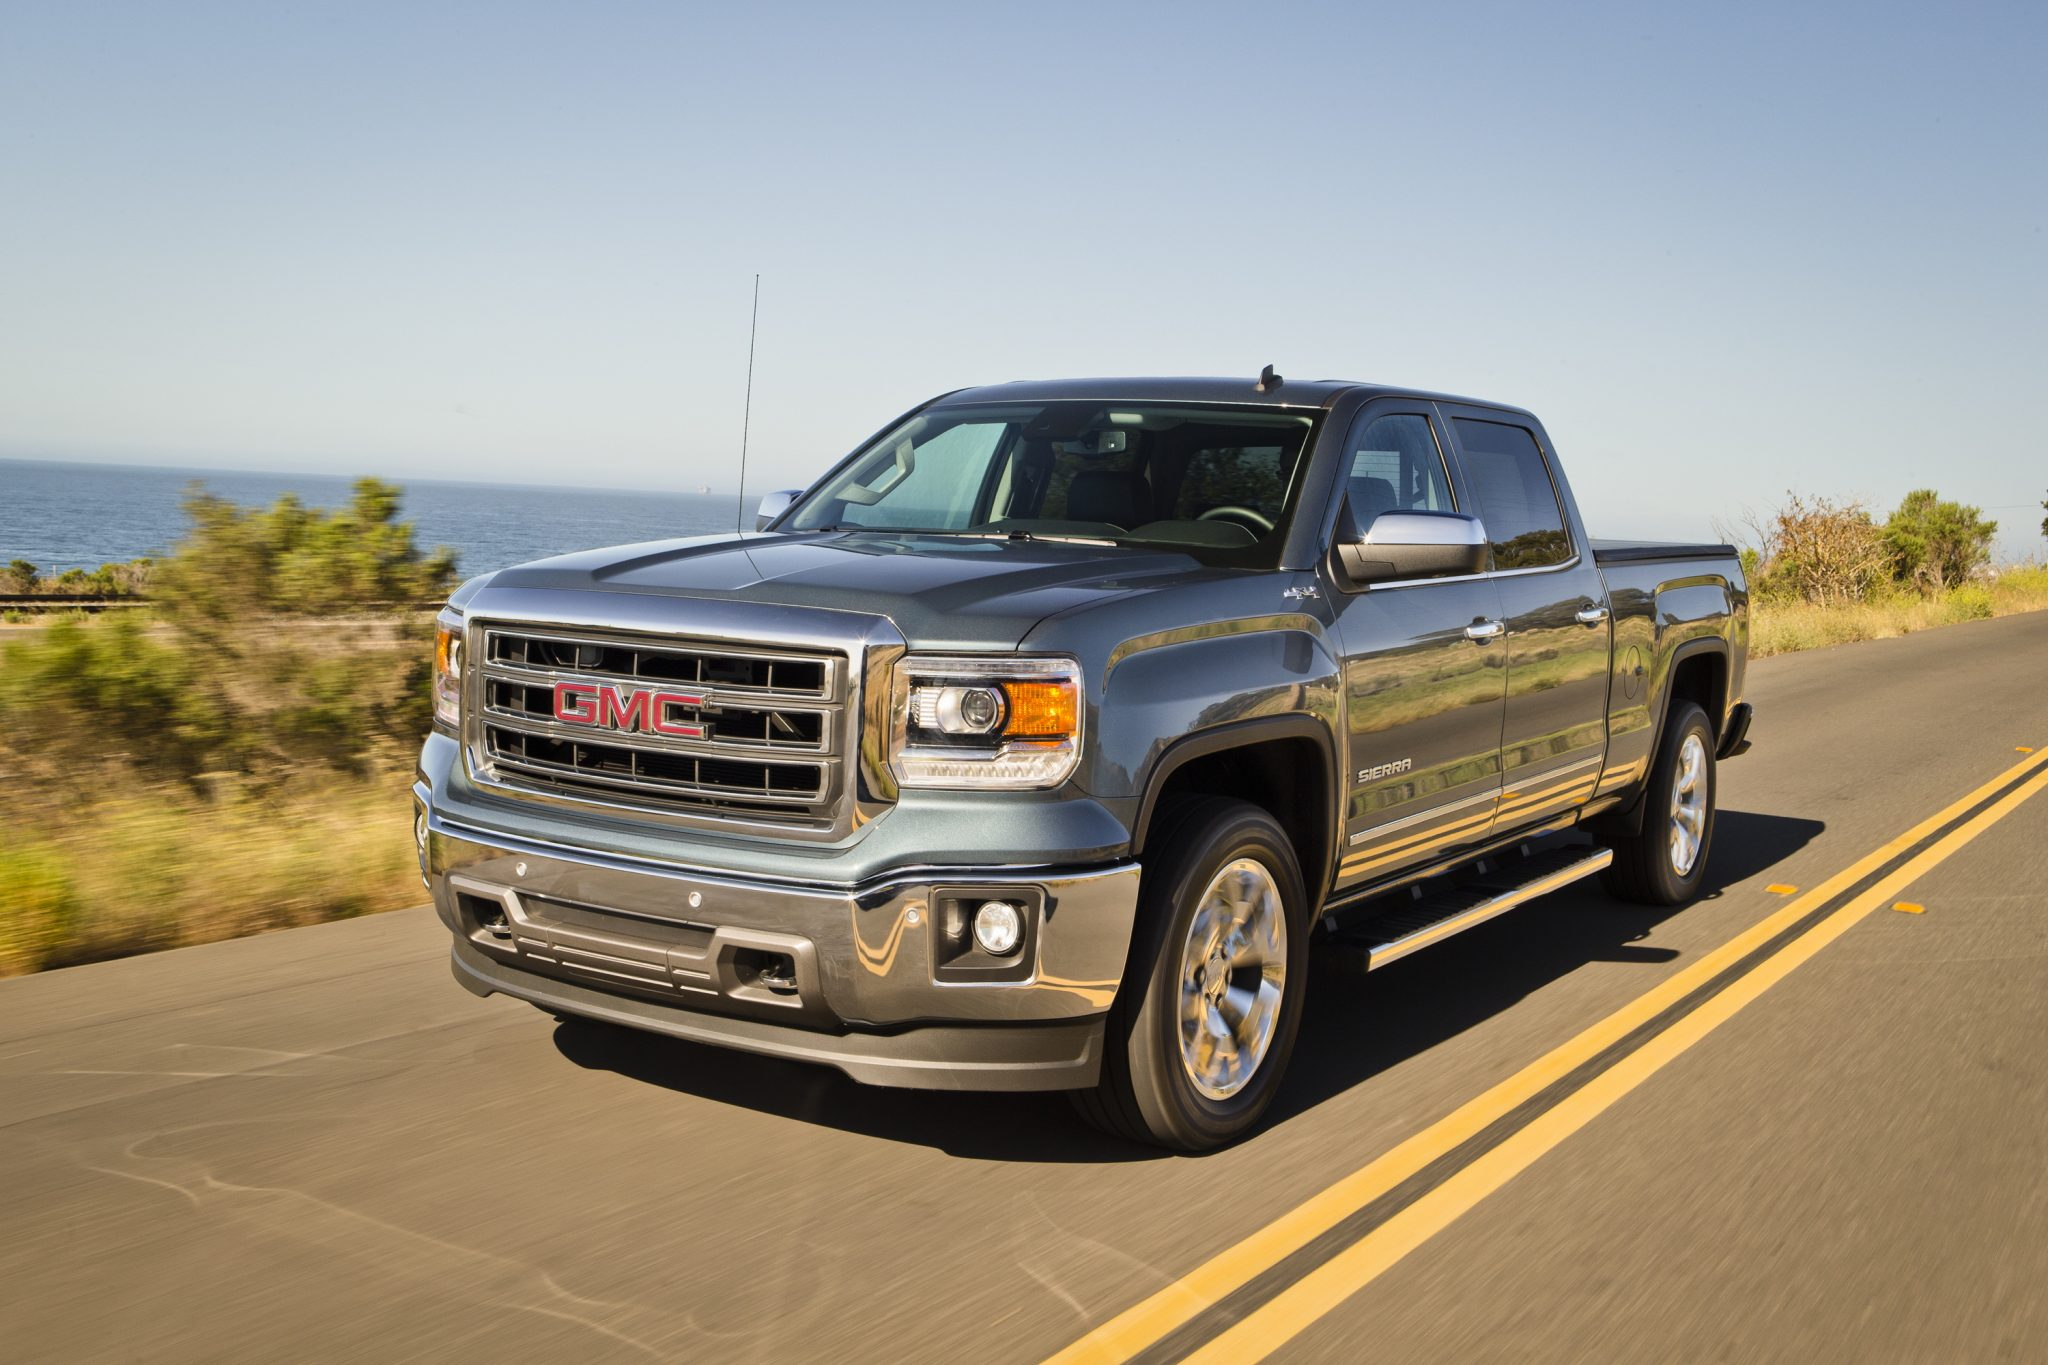 General Motors Sees Strong August 2014 Gmc Sales The